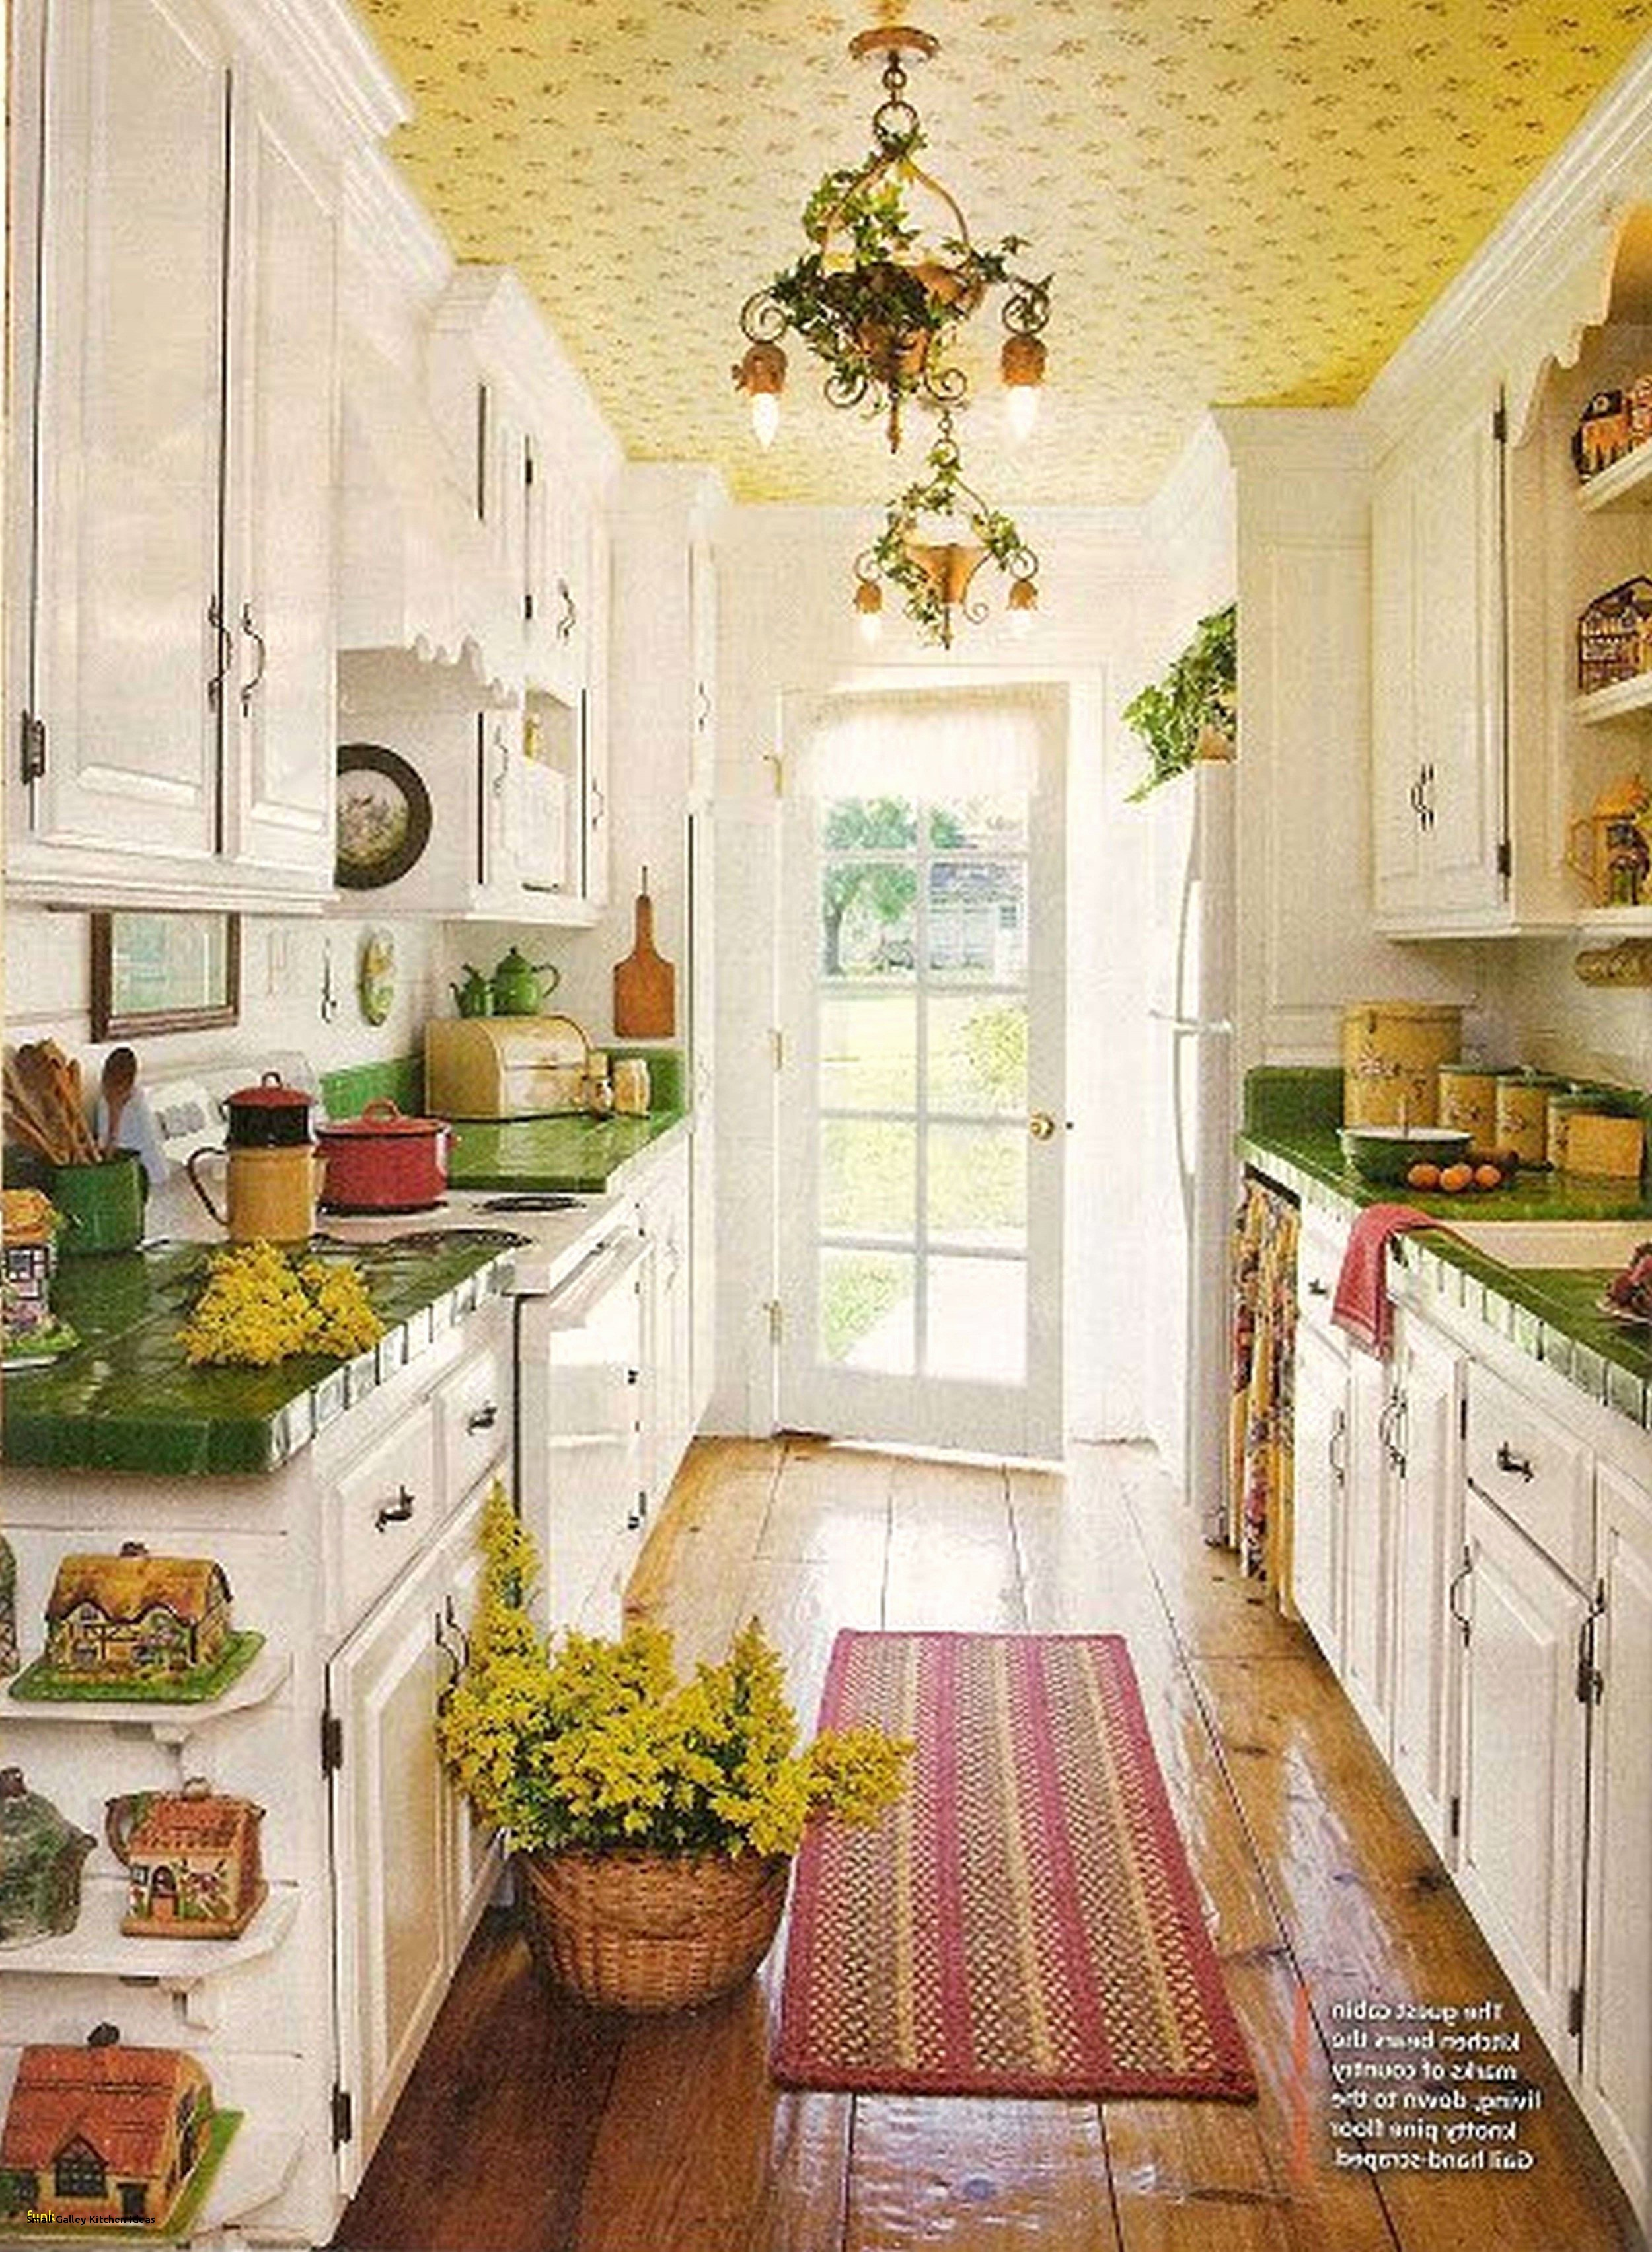 Desain Dapur Online Paling Bagus Untuk Galley Kitchen Modern Design Awesome Small Galley Kitchen Ideas Of Desain Dapur Online Terbaru Untuk Small Kitchen Design Layout 10—10 Small Kitchen Remodeling Home